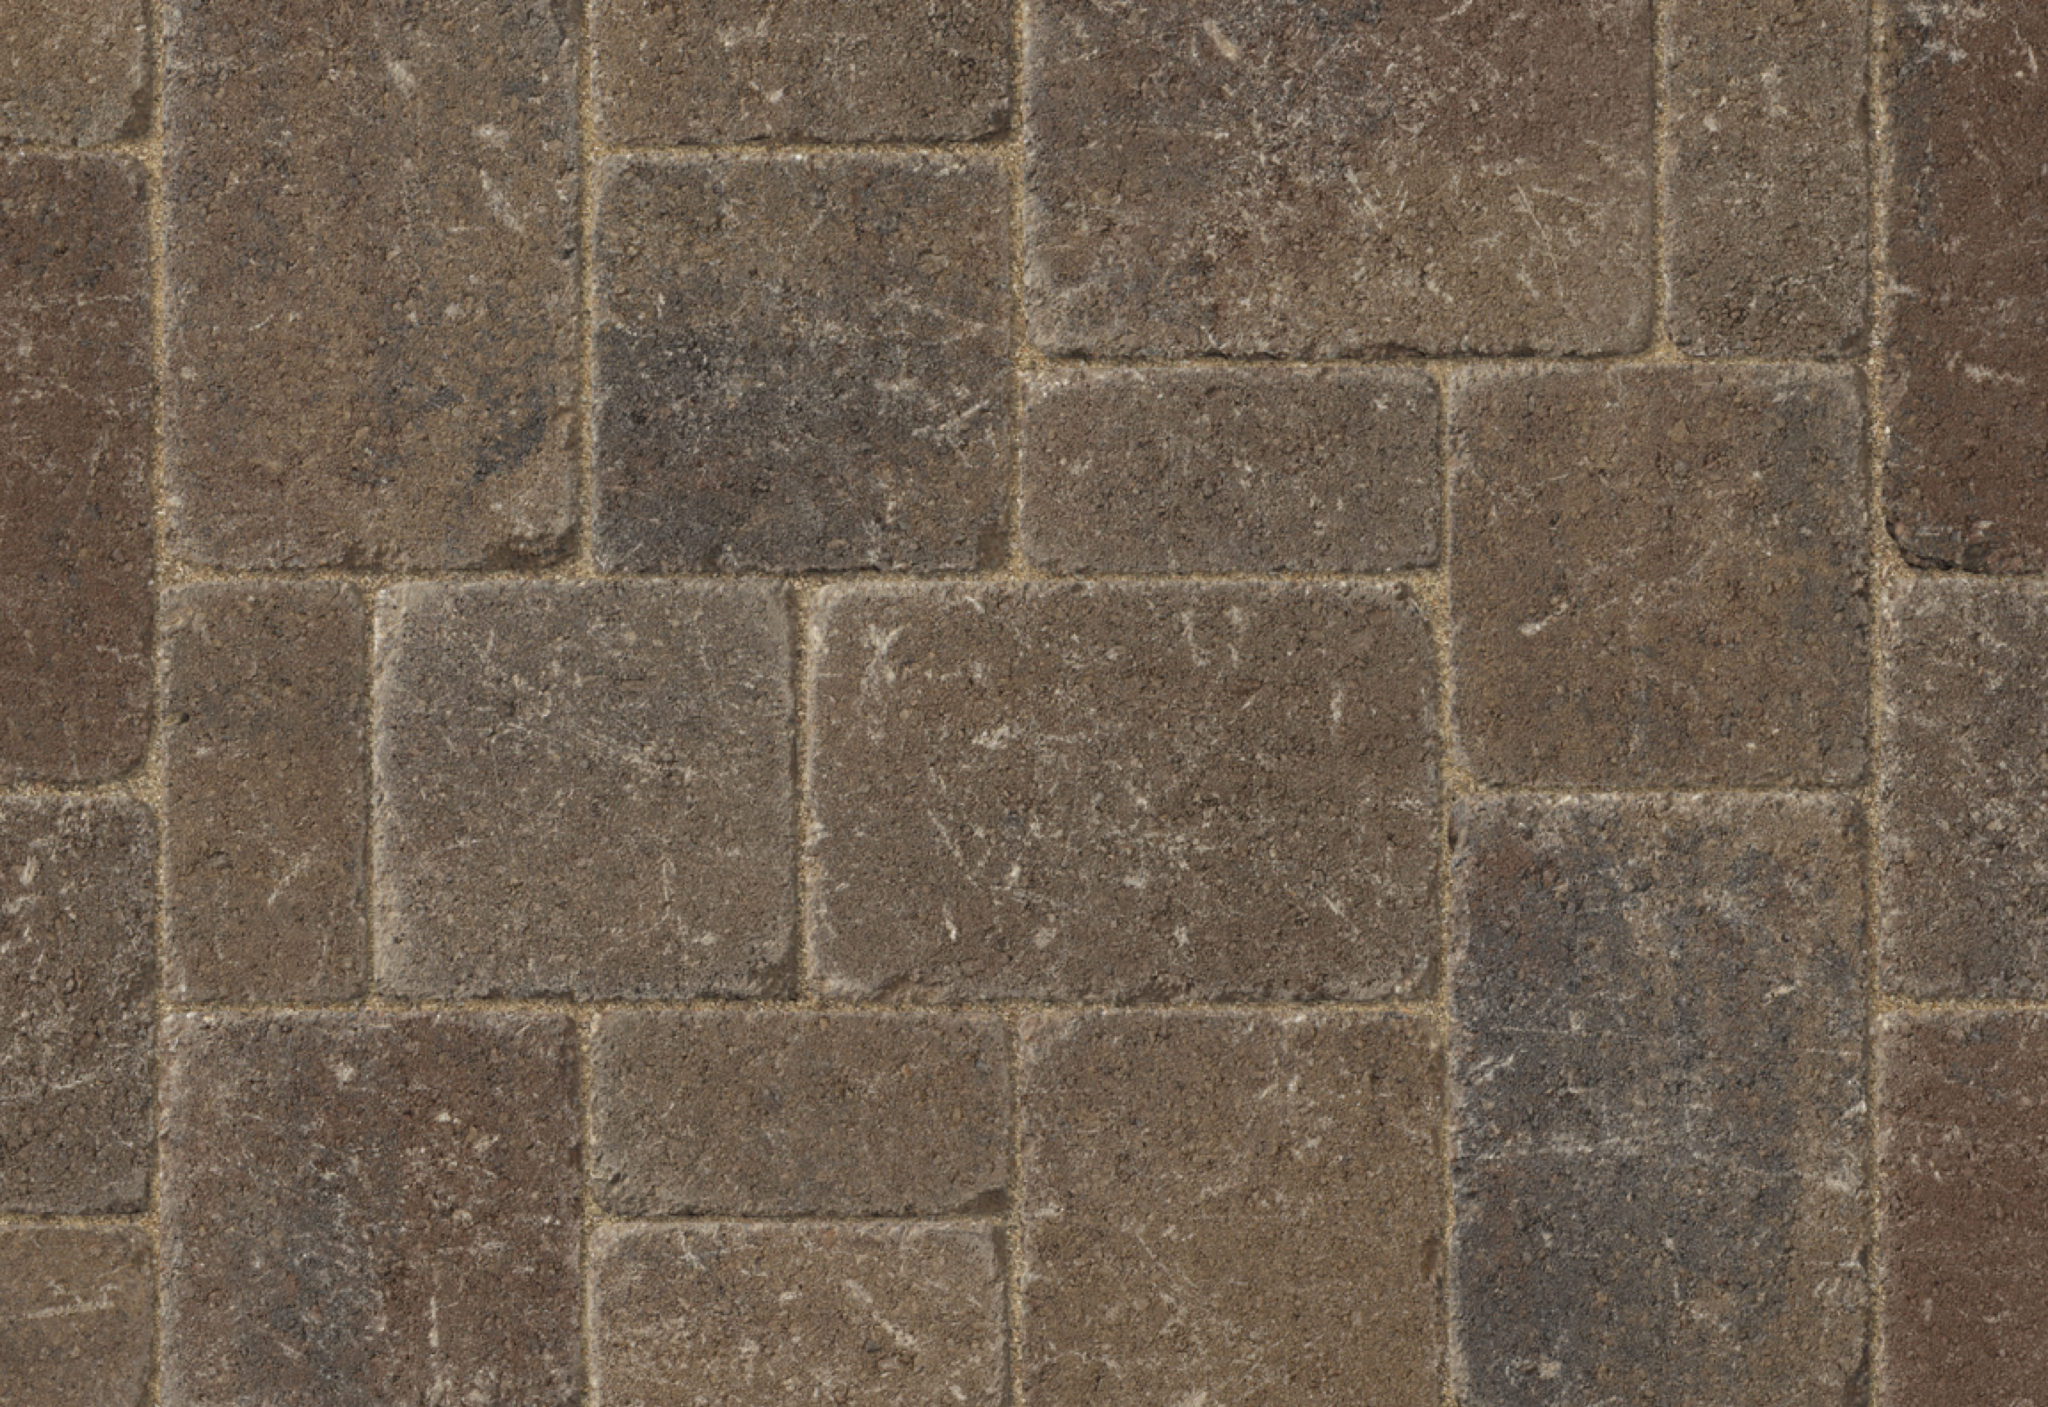 Superbe Belgard Dublin Cobble Paver In Bella